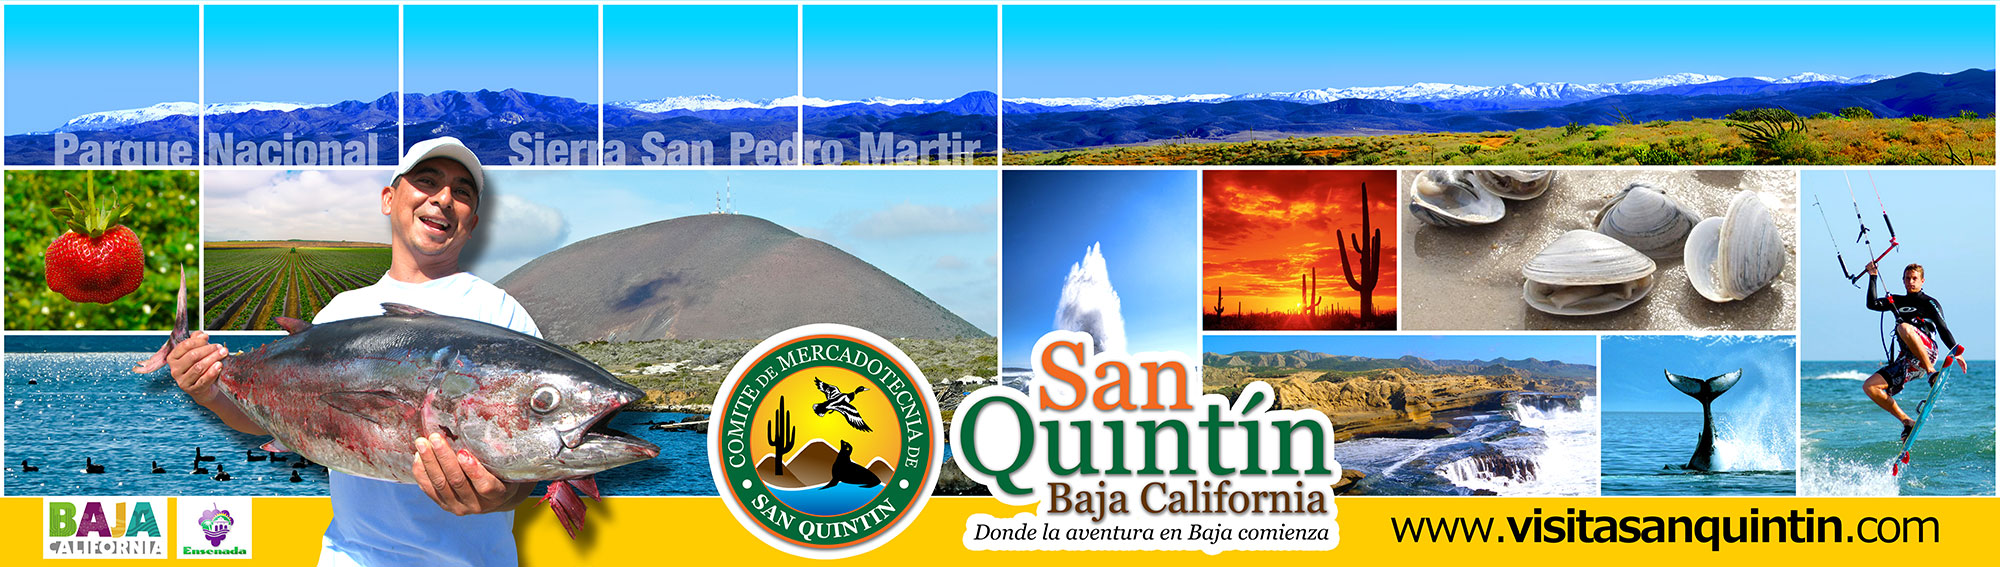 baja san quintin muslim Let's discuss a little bit about baja safety the best way to experience baja is by driving san felipe, which is located on san quintin | santa rosalia.